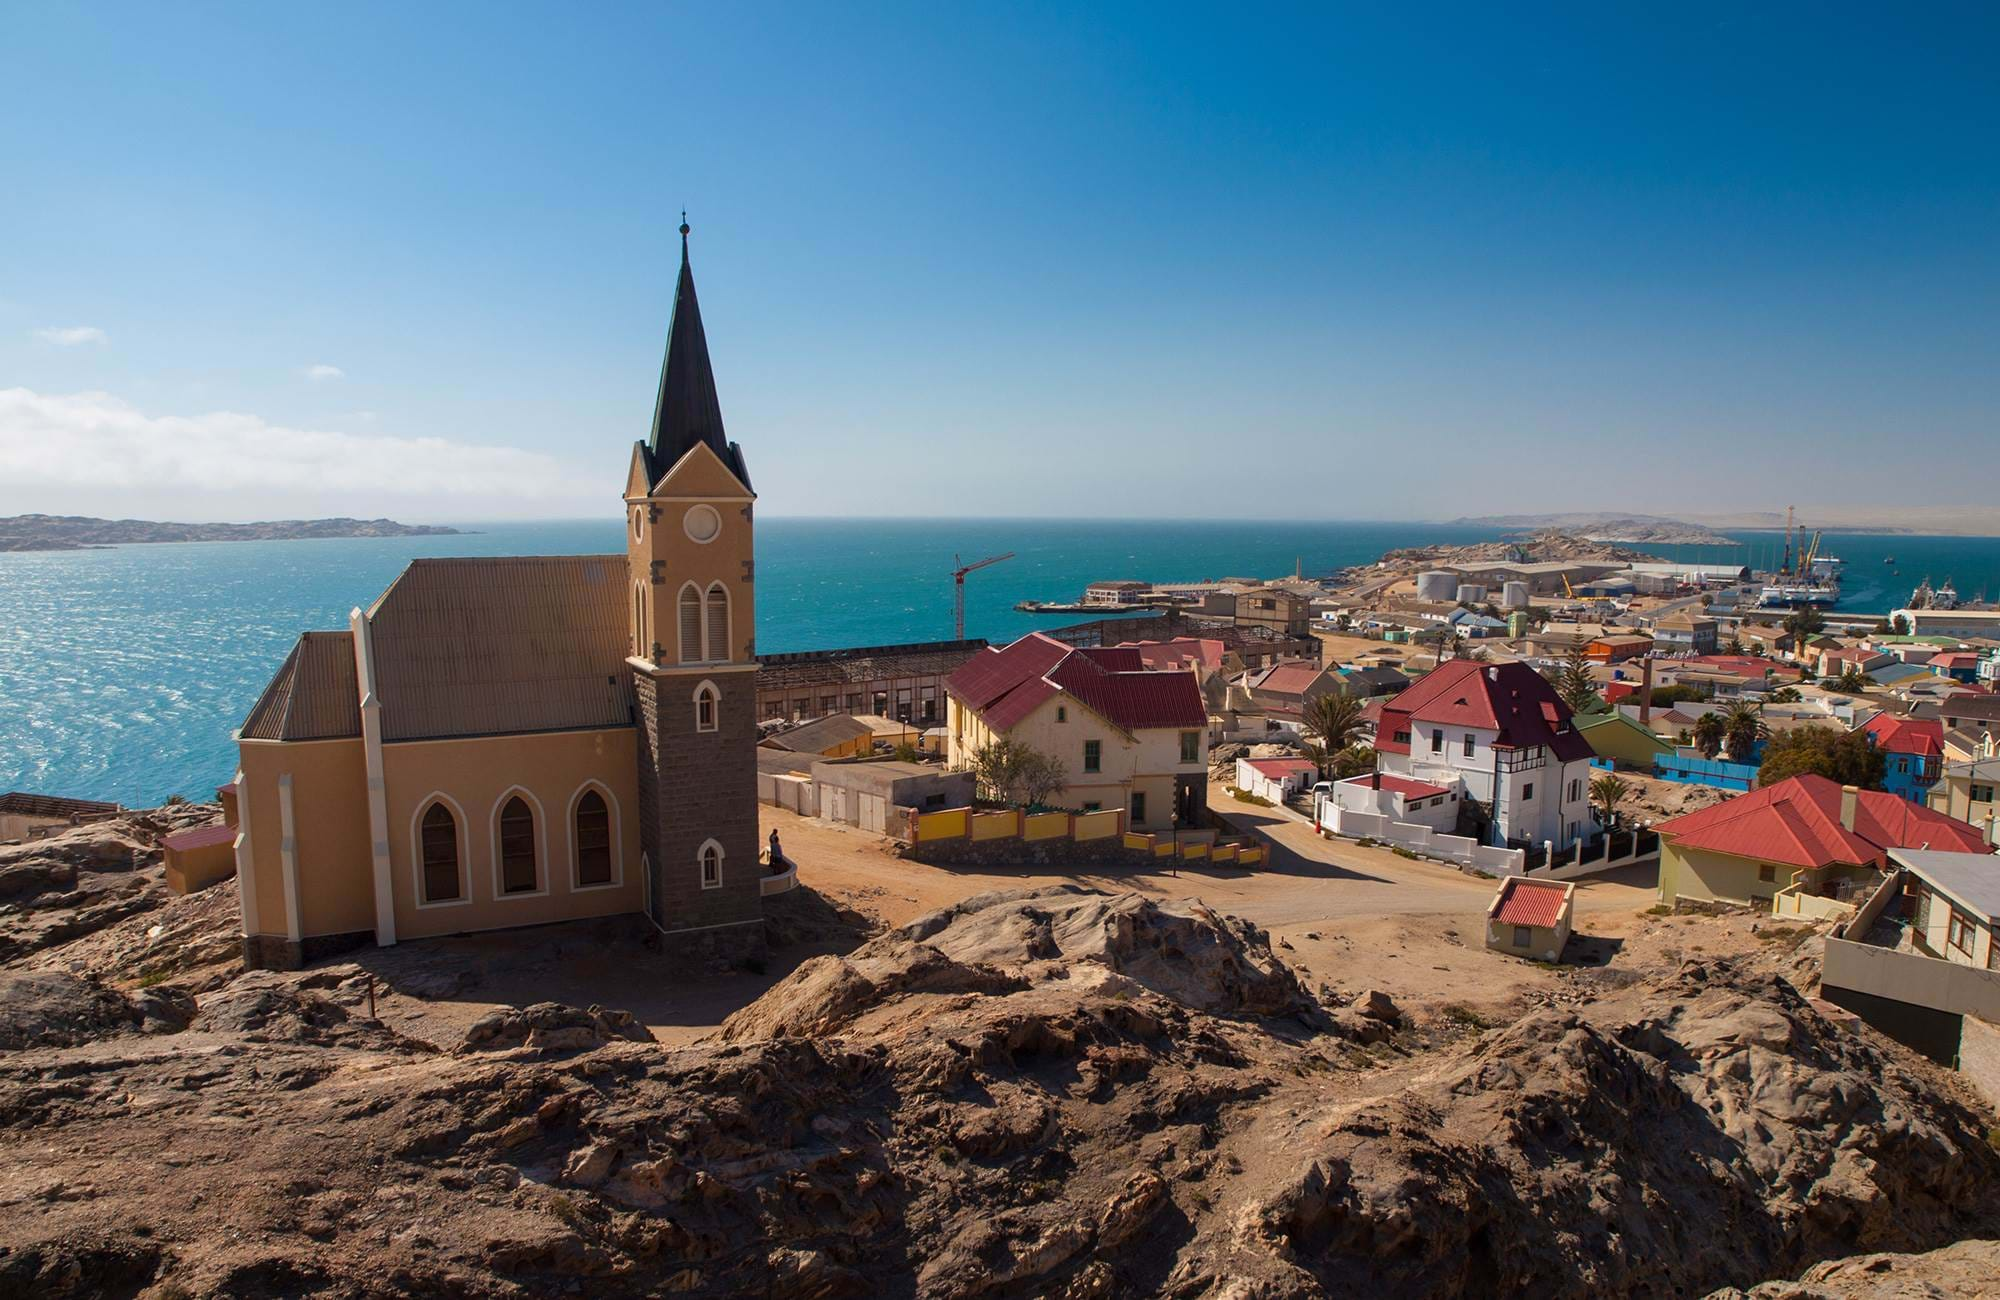 namibia-luderitz-town-view-cover